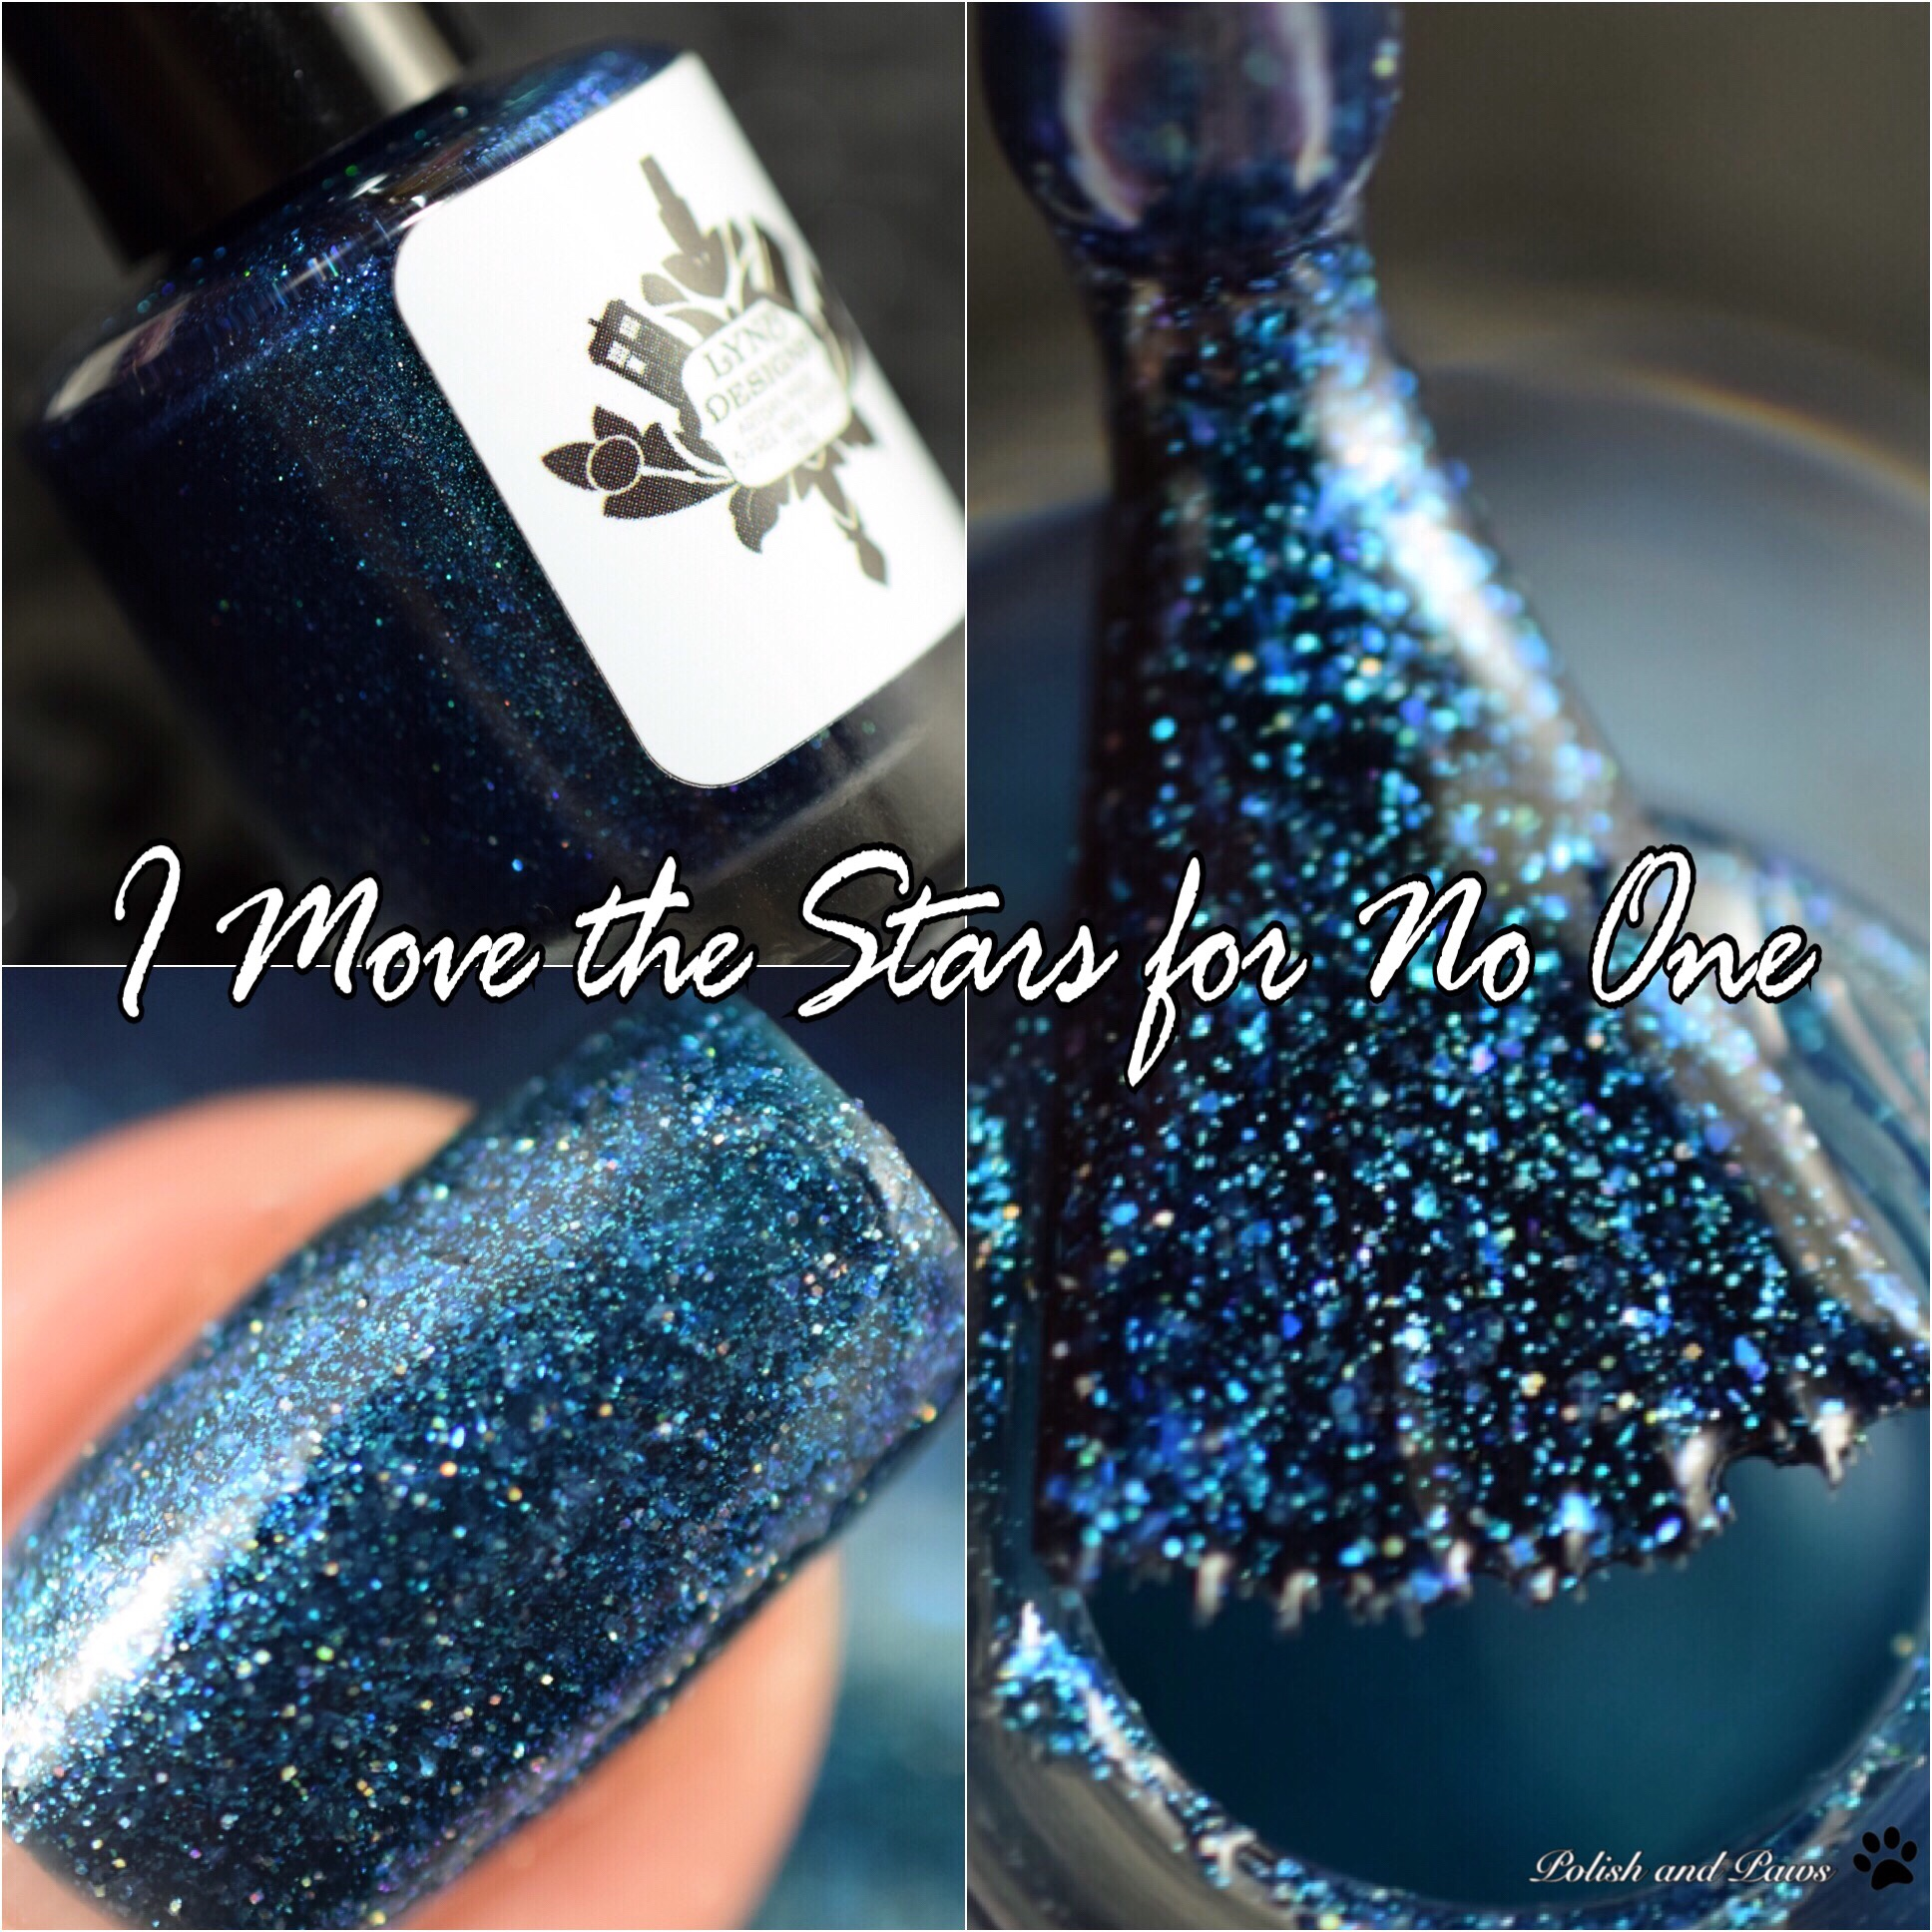 LynB Designs I Move the Stars for No One